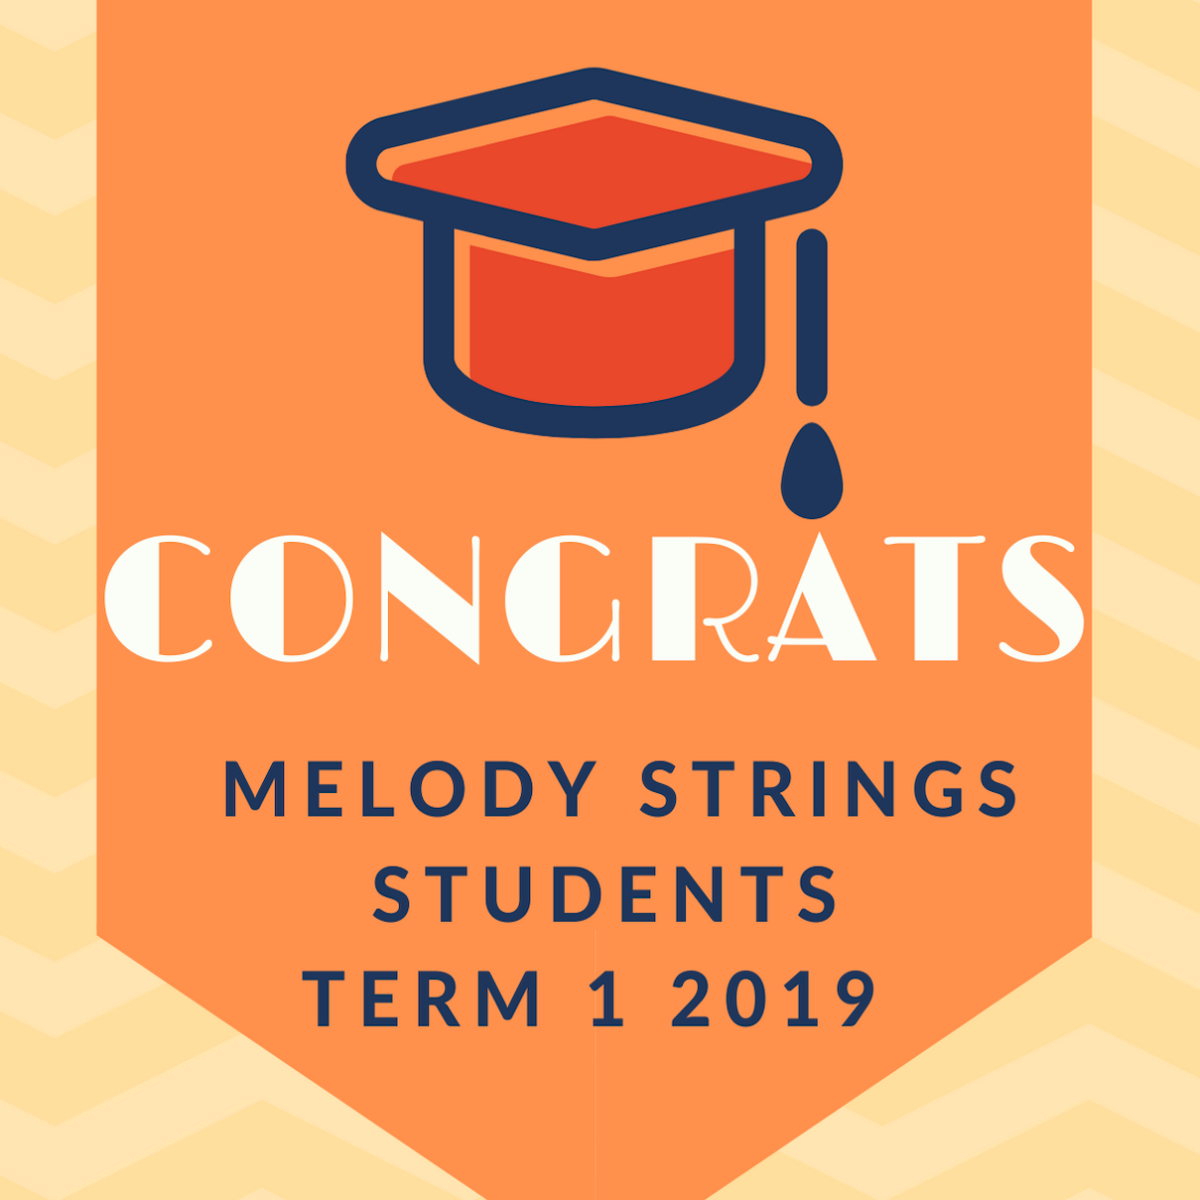 Melody Strings students Term 1 2019